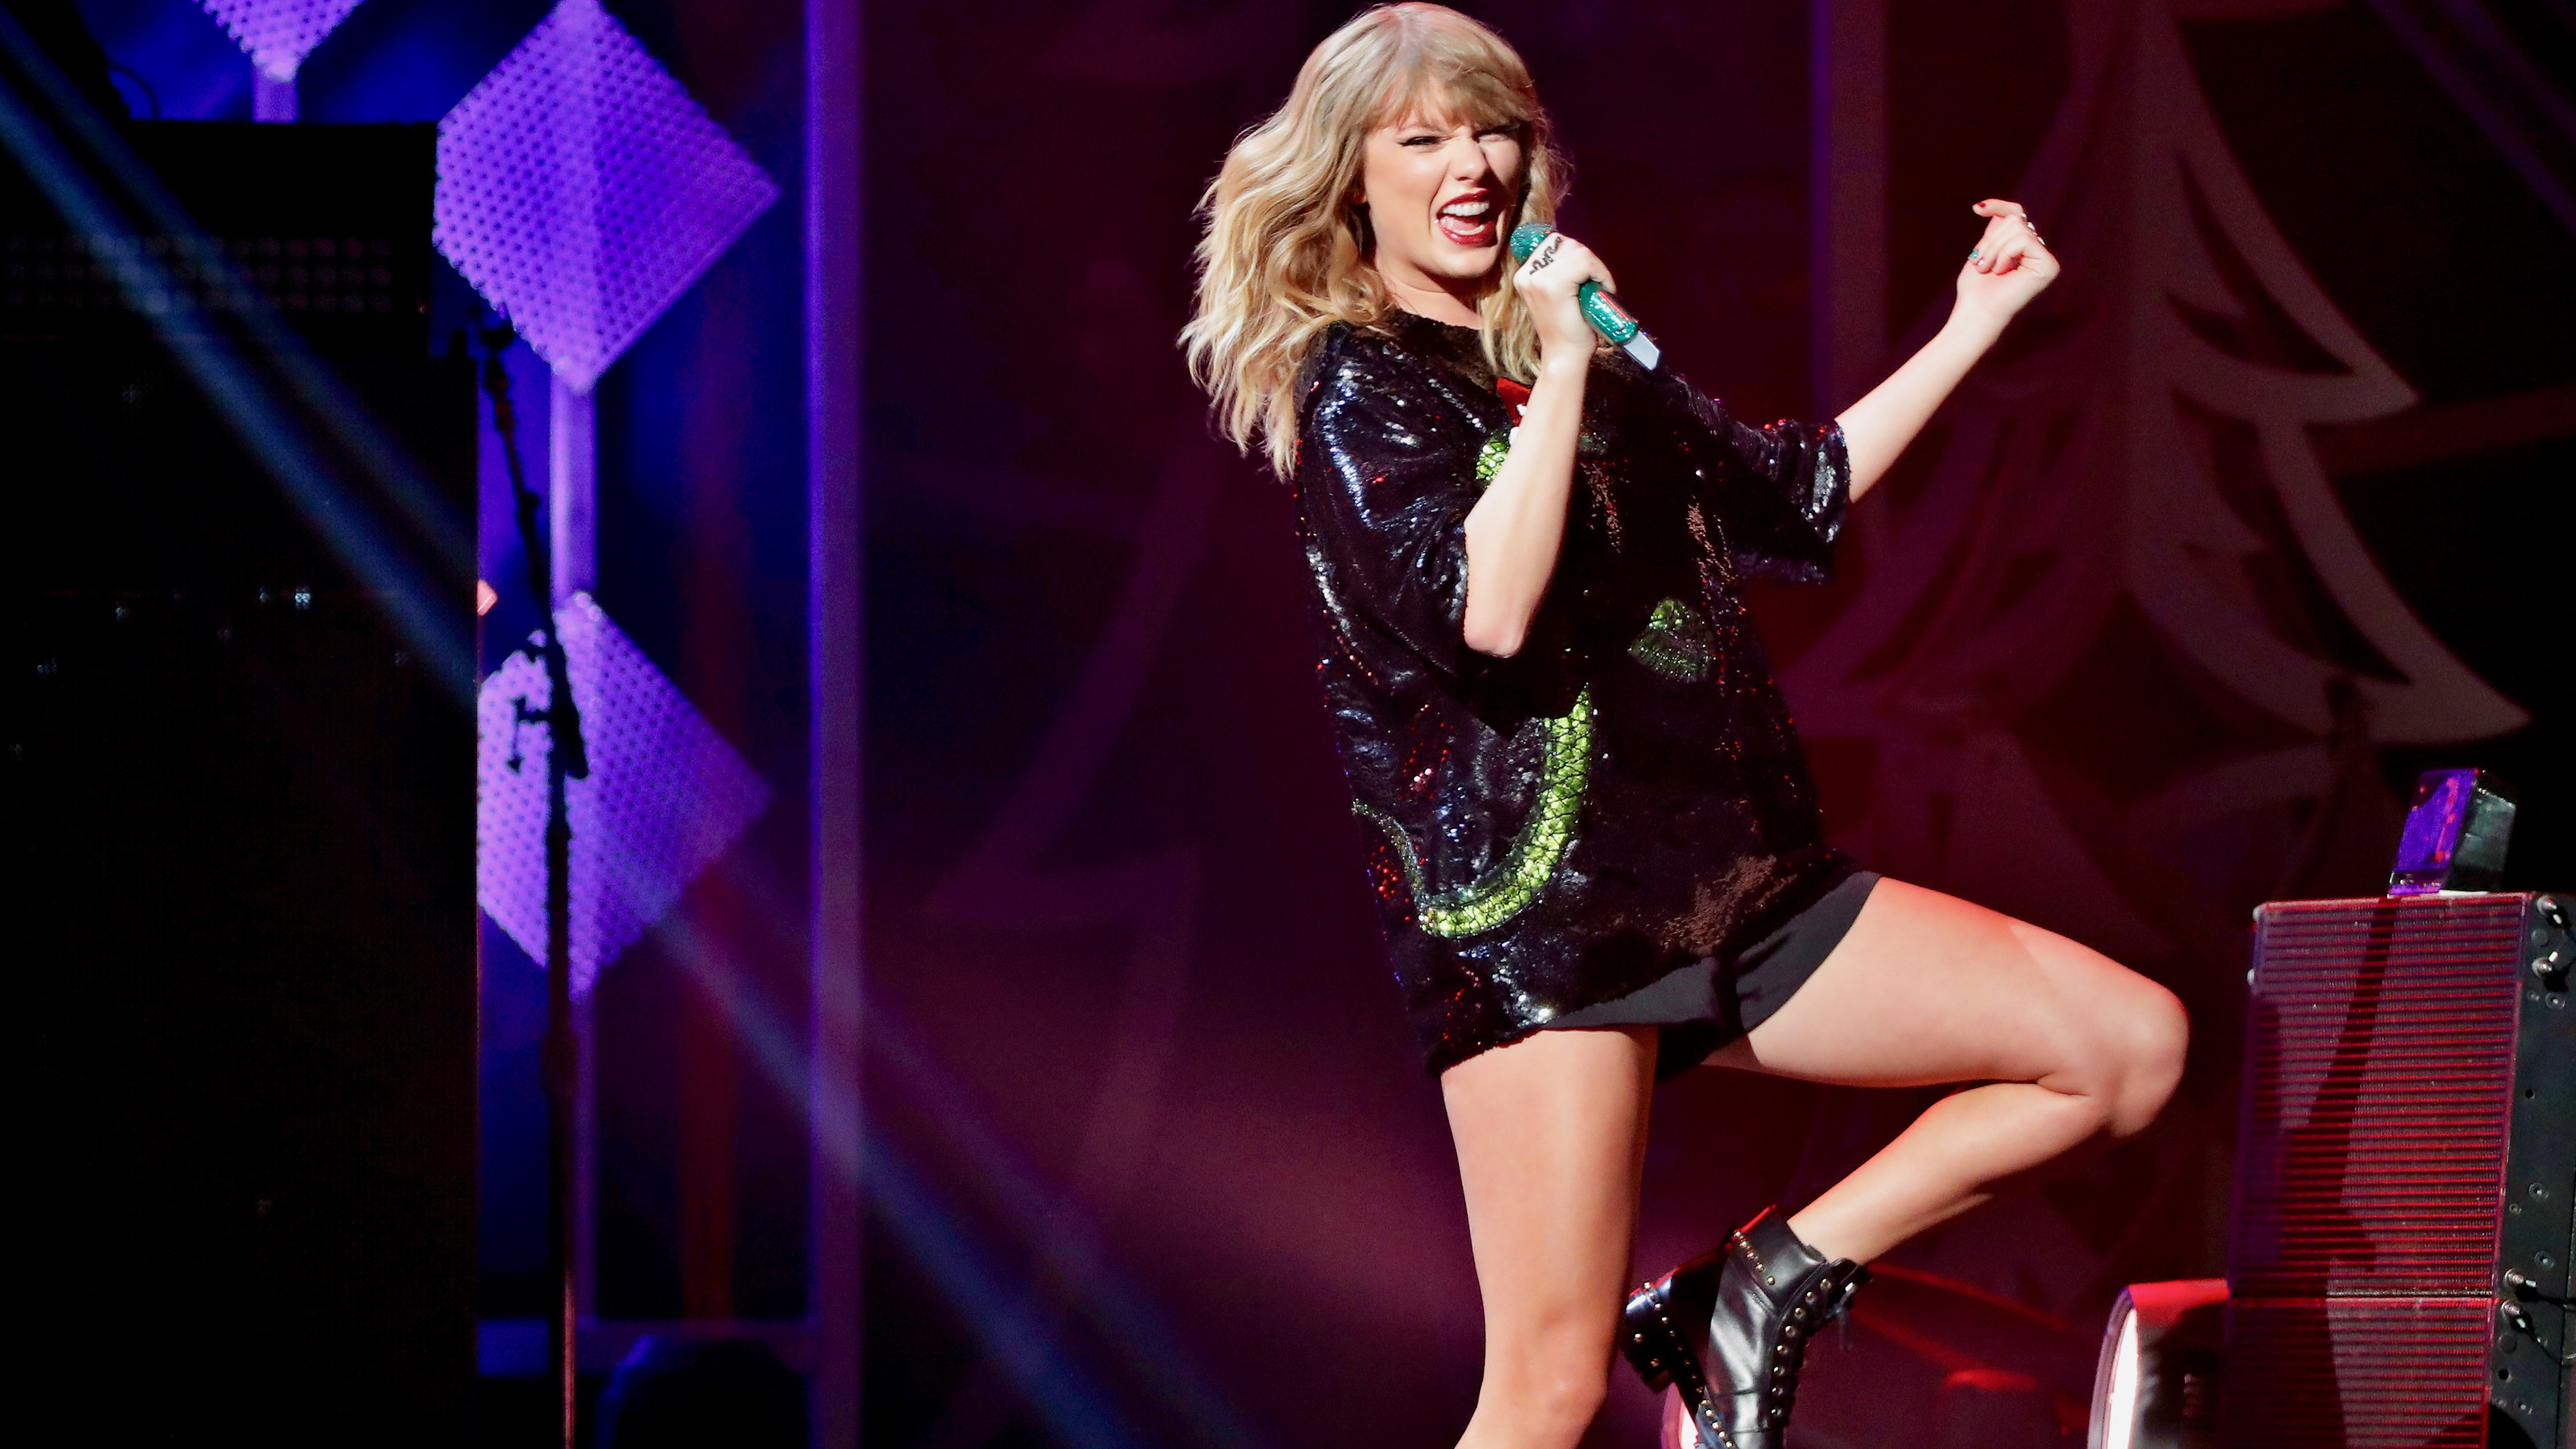 Taylor Swift used facial recognition to track her stalkers at a concert